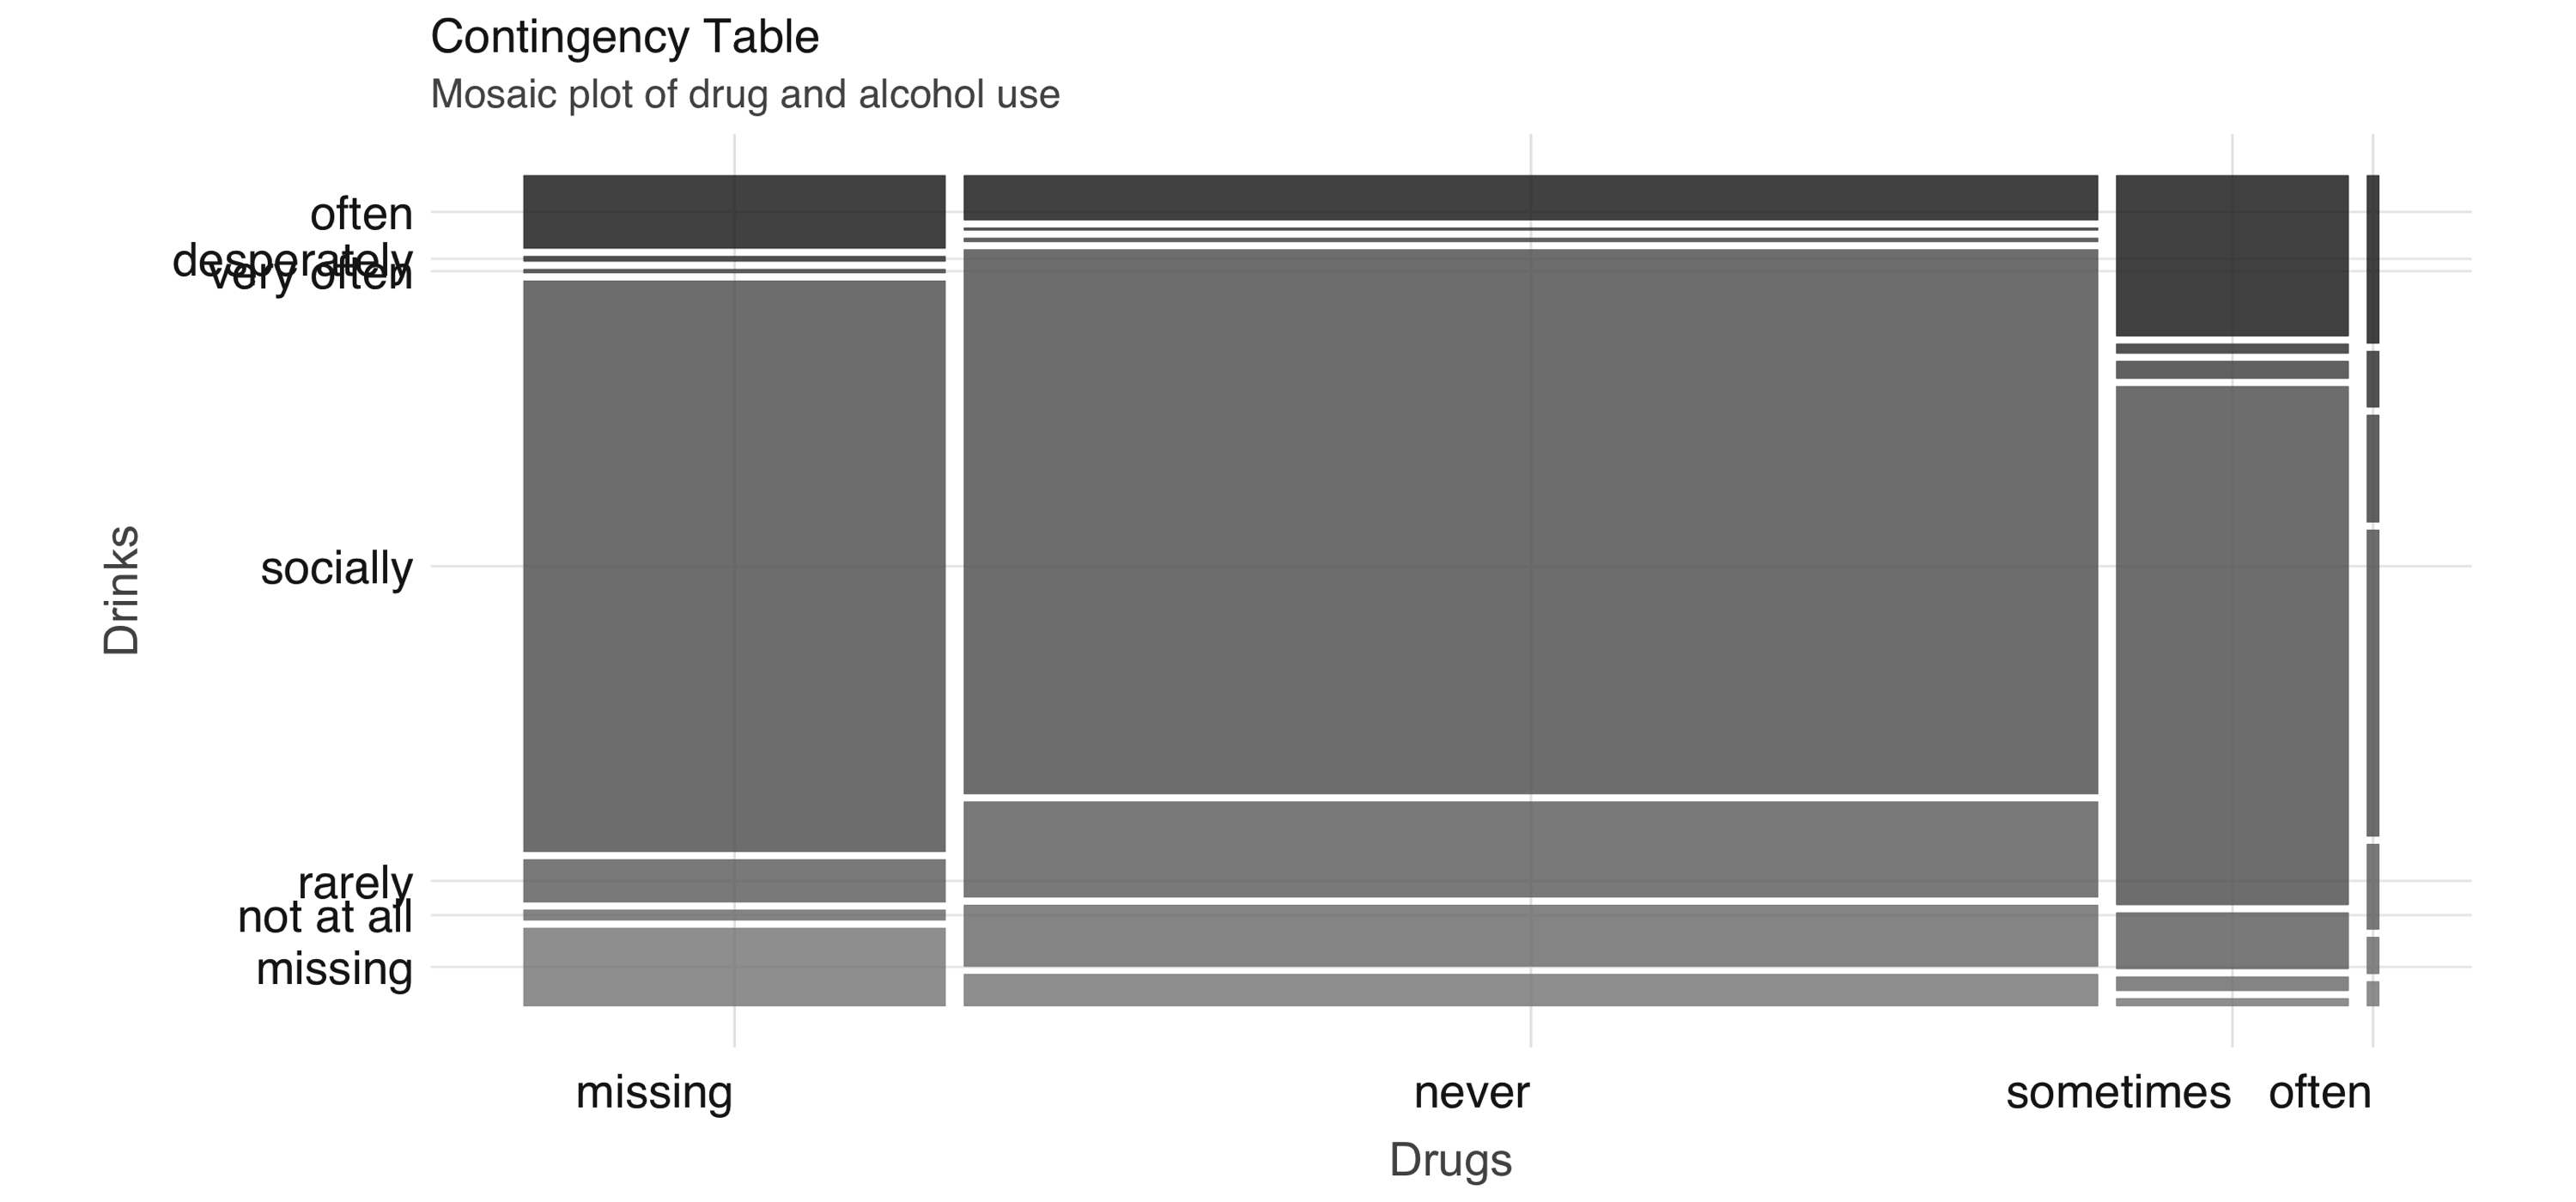 Mosaic plot of drug and alcohol use